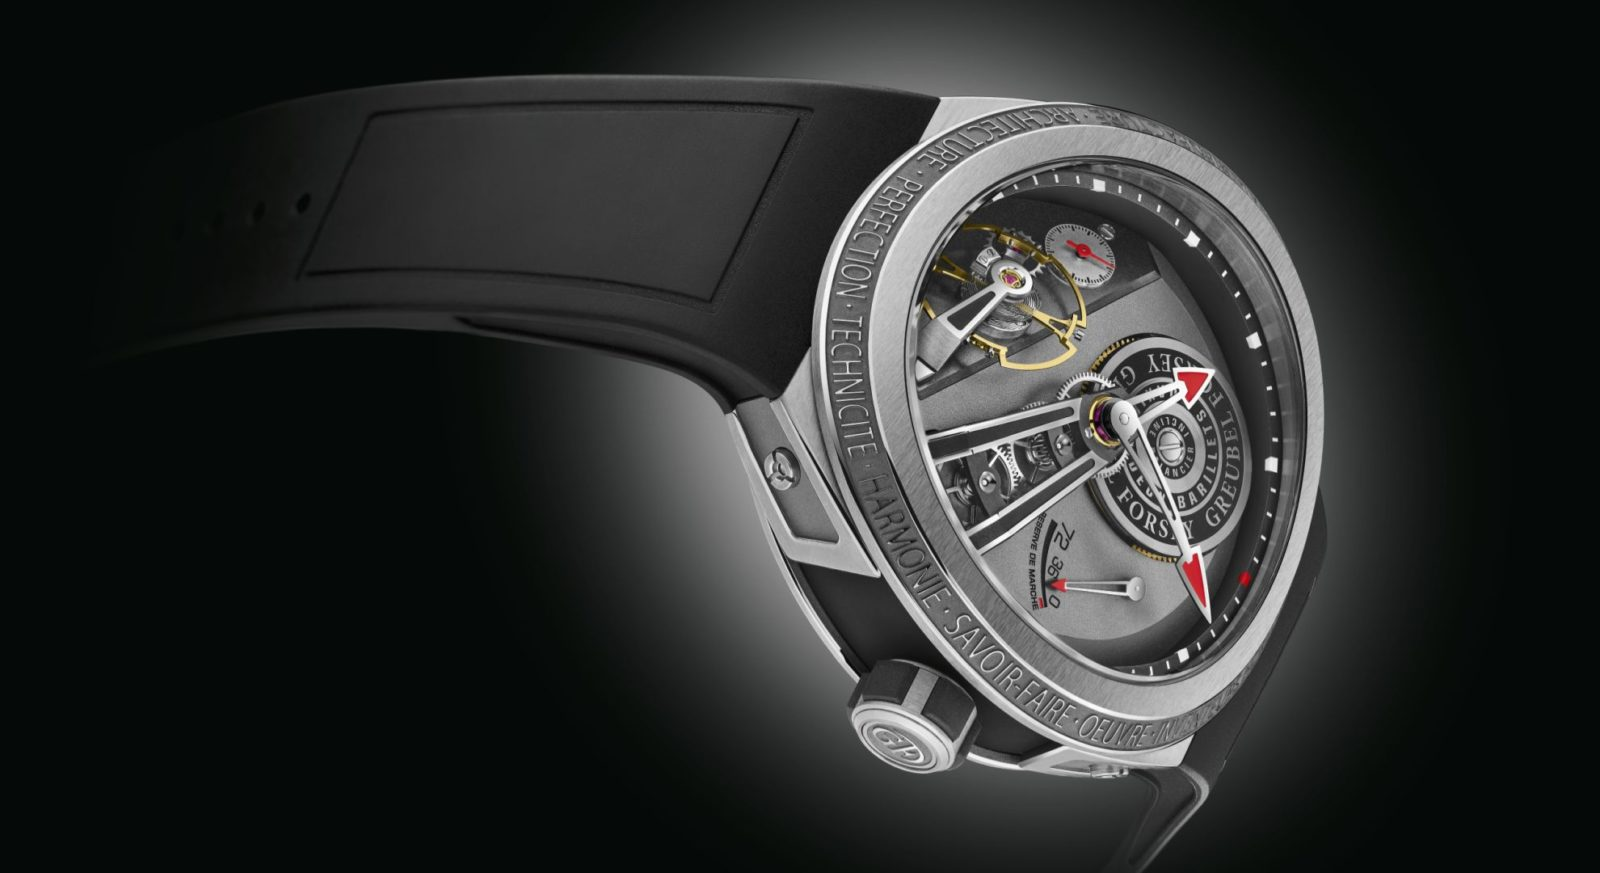 Greubel Forsey doubles down on sports watch mania with the new Balancier S